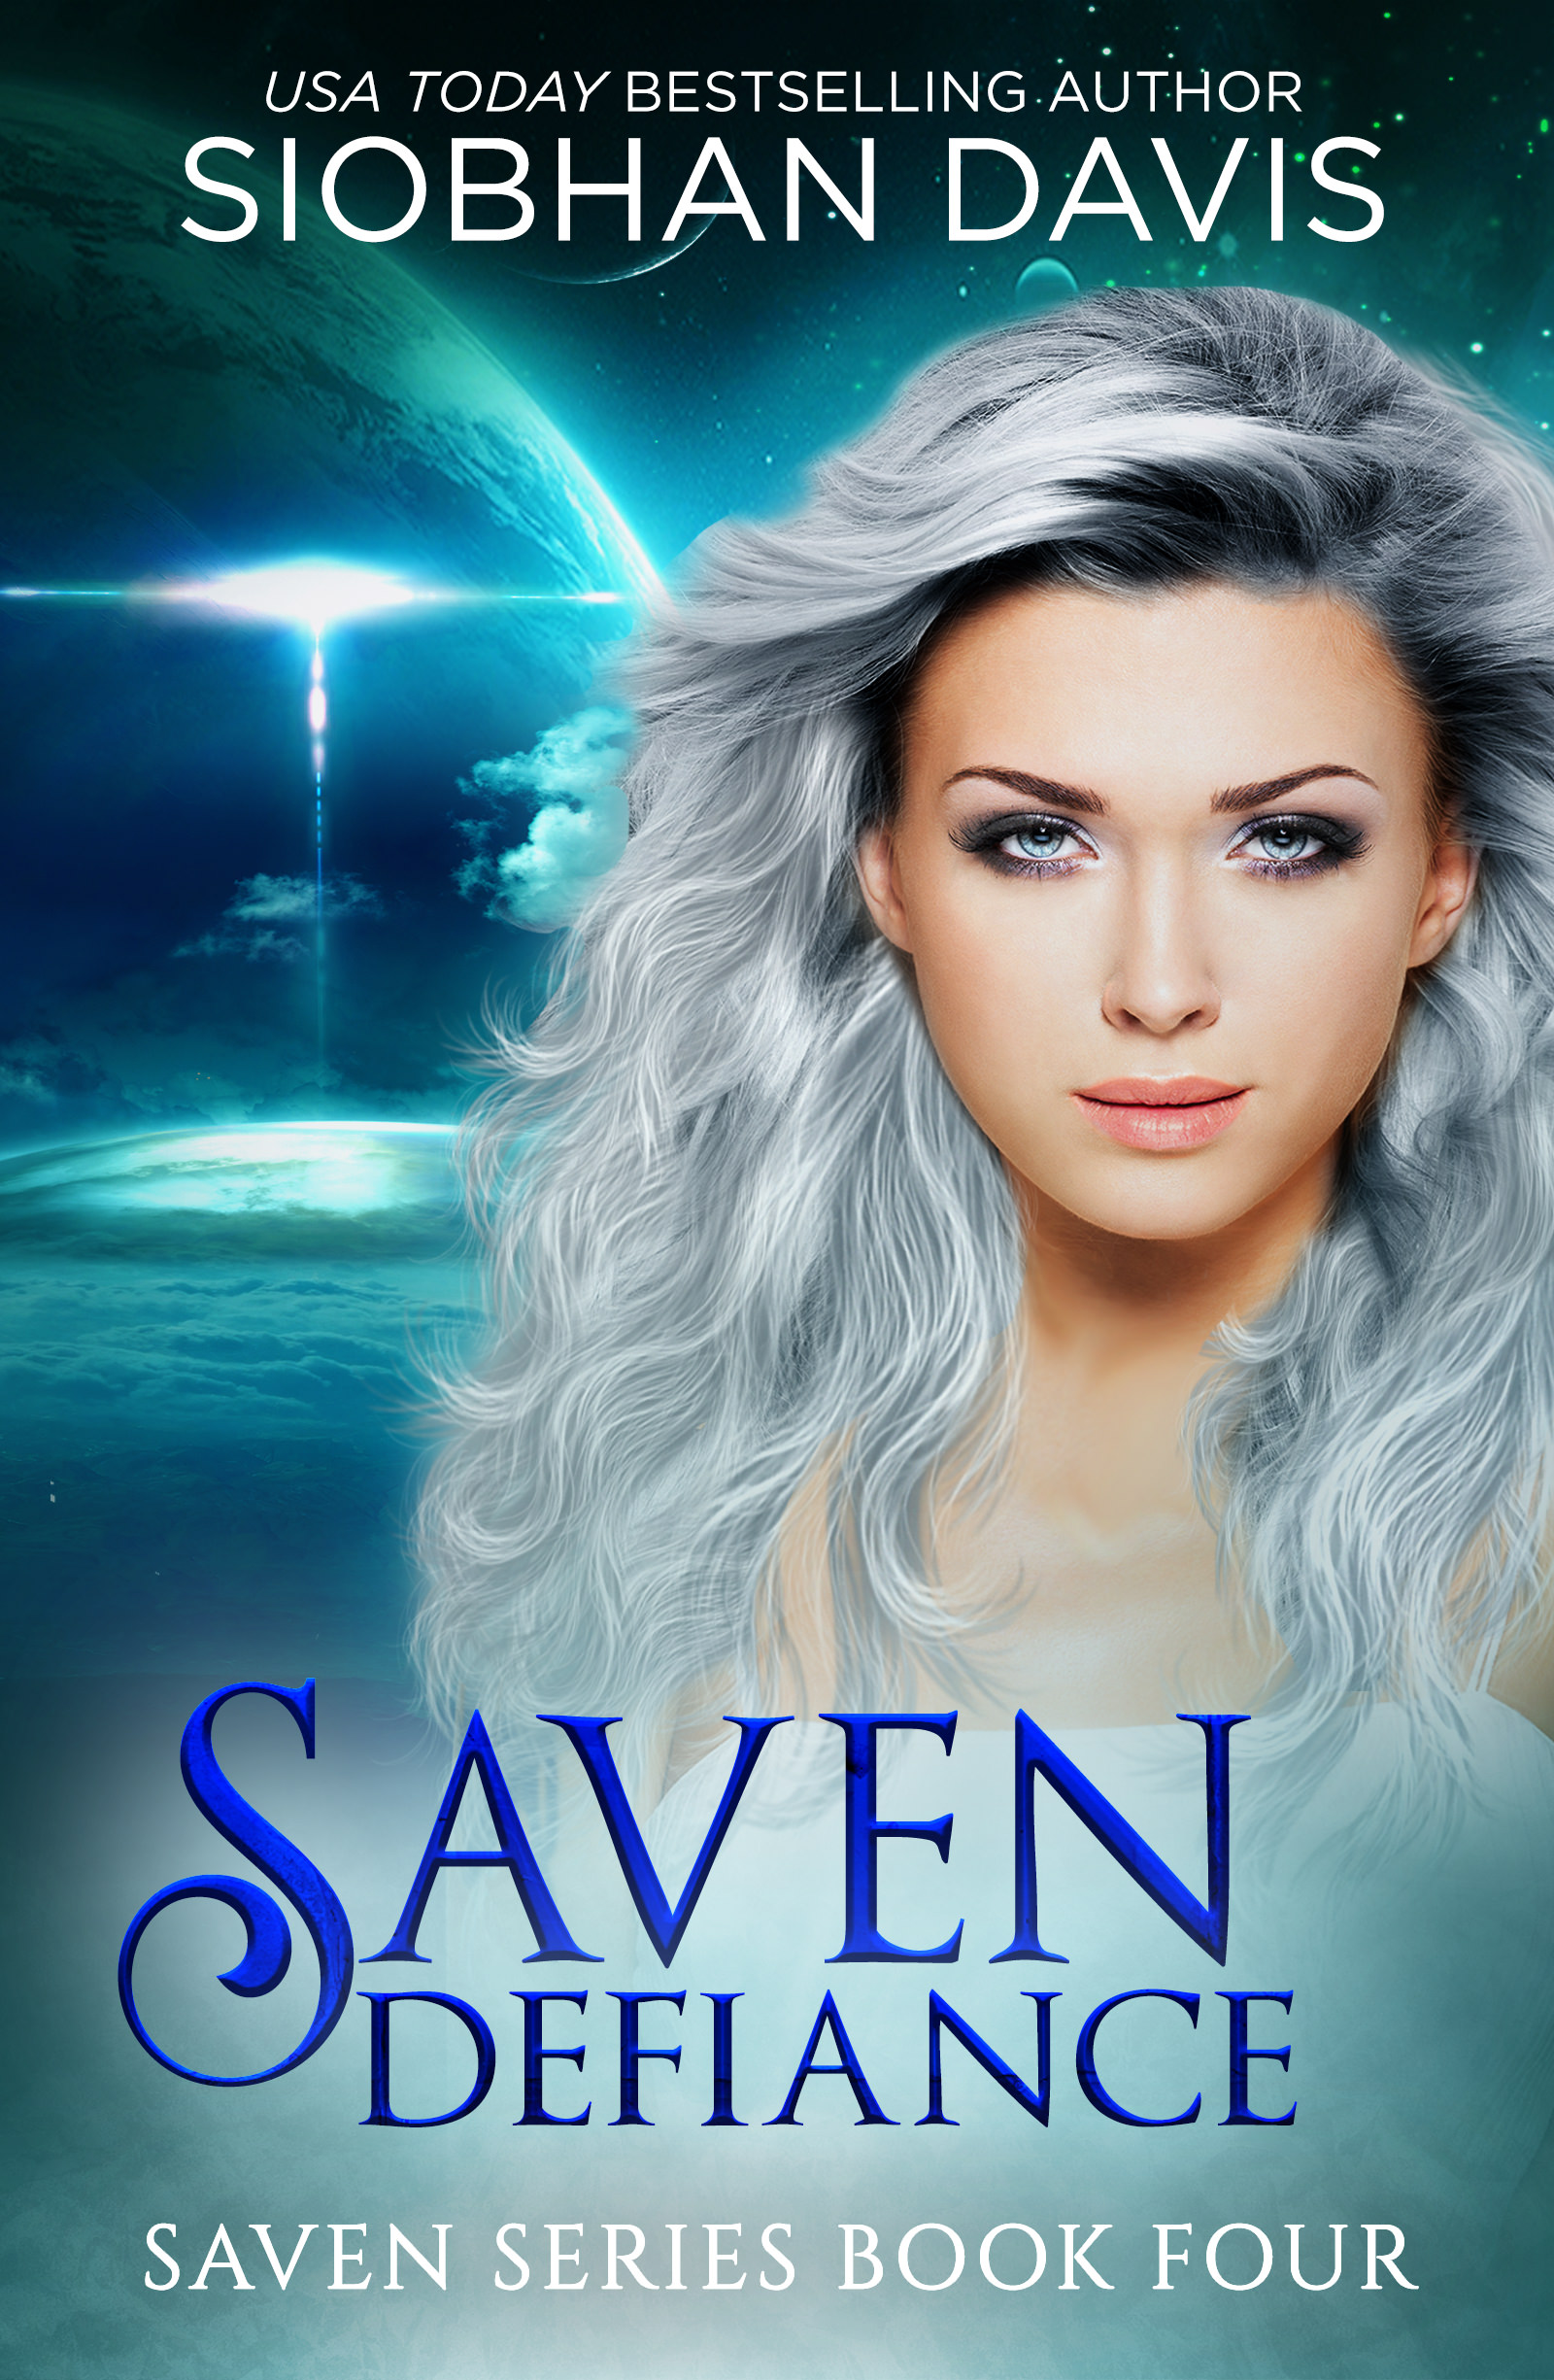 Saven: Defiance (The Saven Series #4)